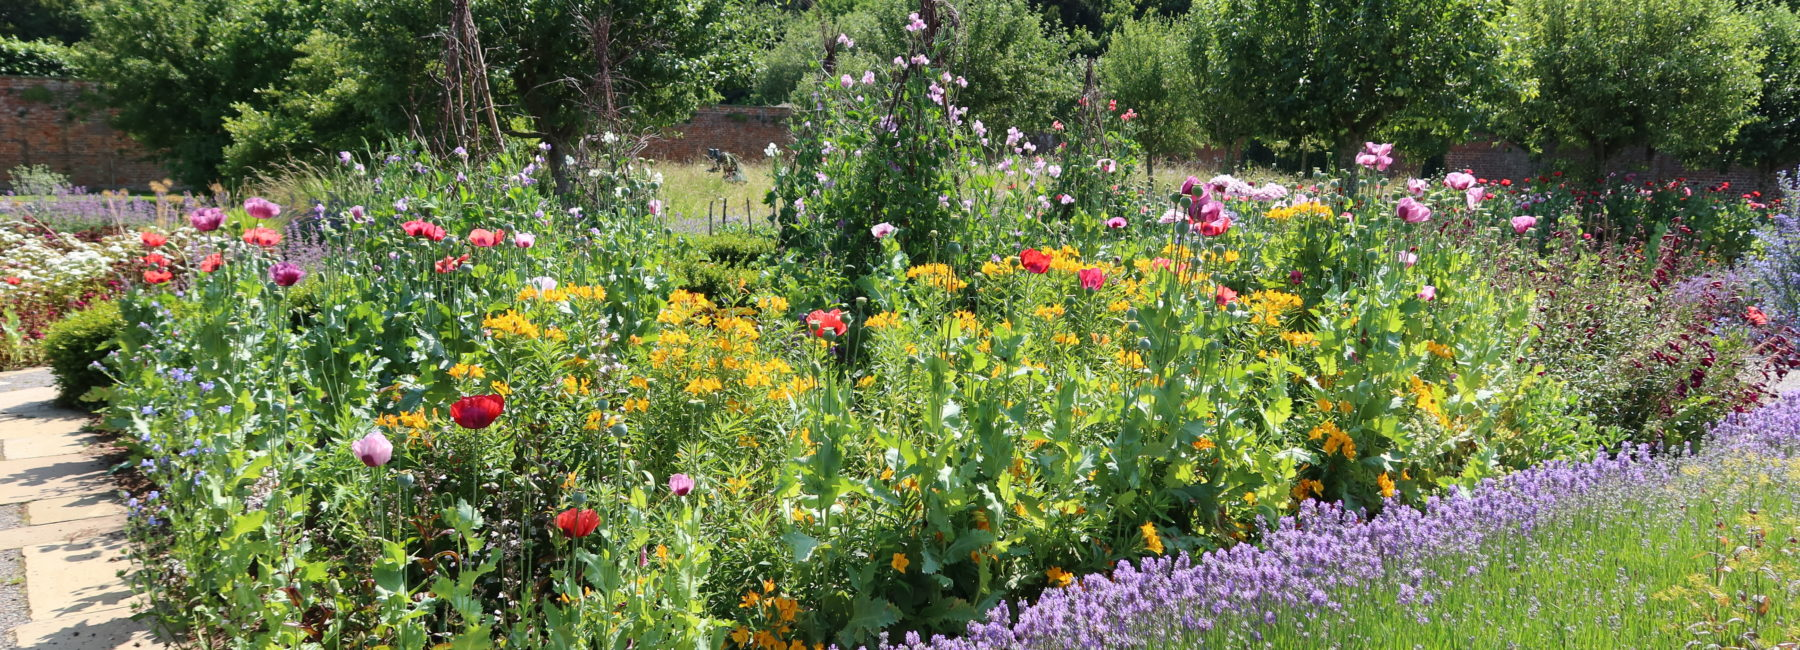 Flower beds with sweetpas & poppies